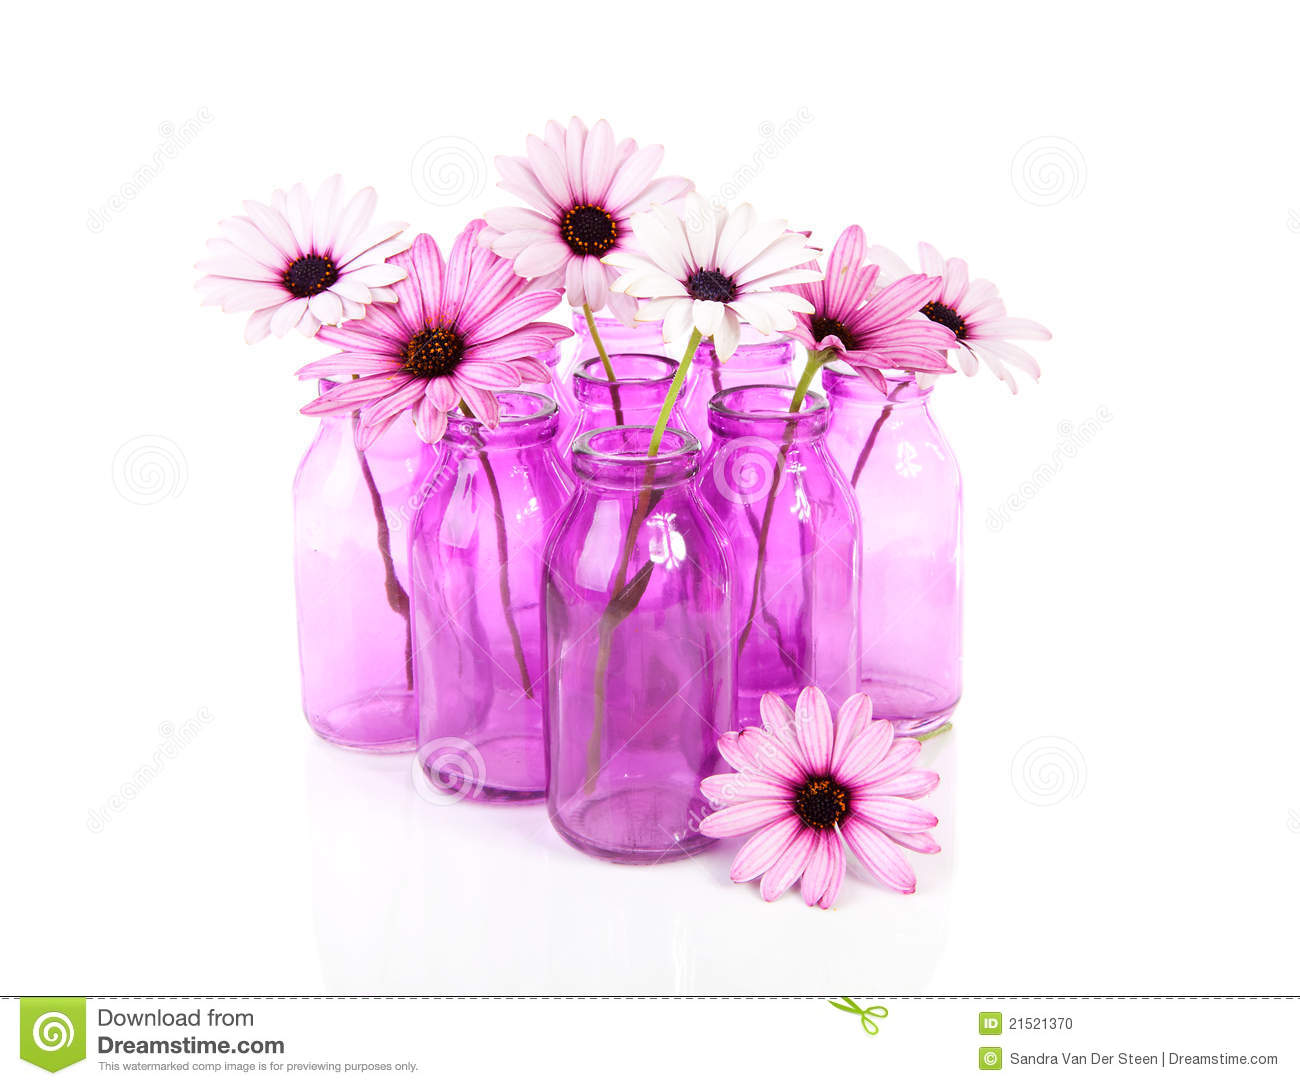 Pink daisy in glass vase stock photo. Image of pink ...